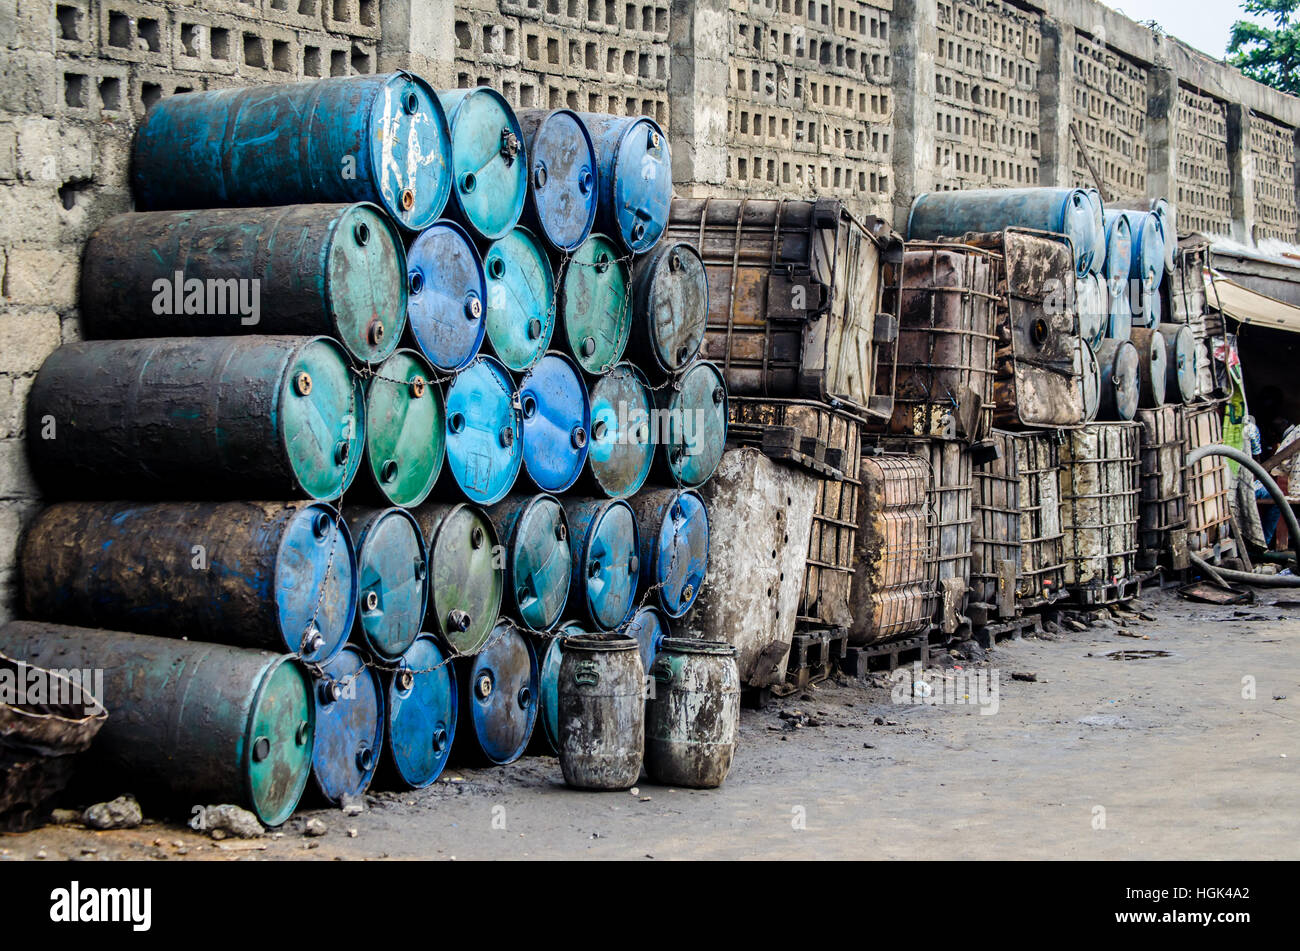 An image showing used drums and tanks piled upon one another, as captured in the city of Lagos, Nigeria - Stock Image